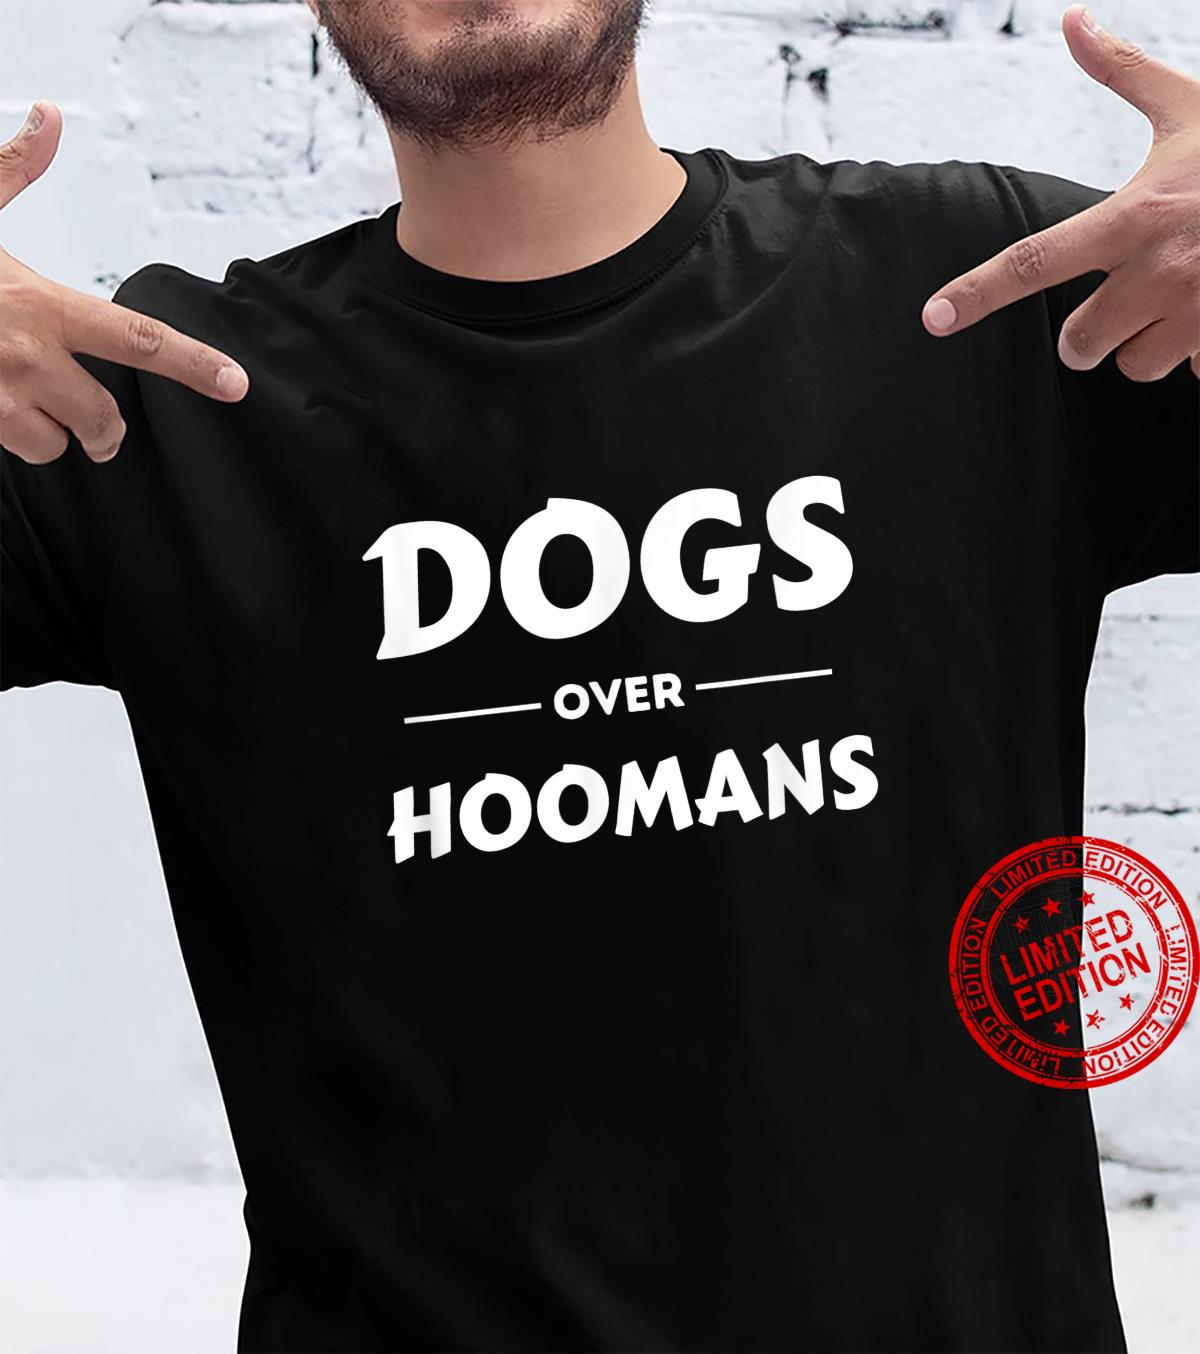 Dogs Over Hoomans Dogs Shirt